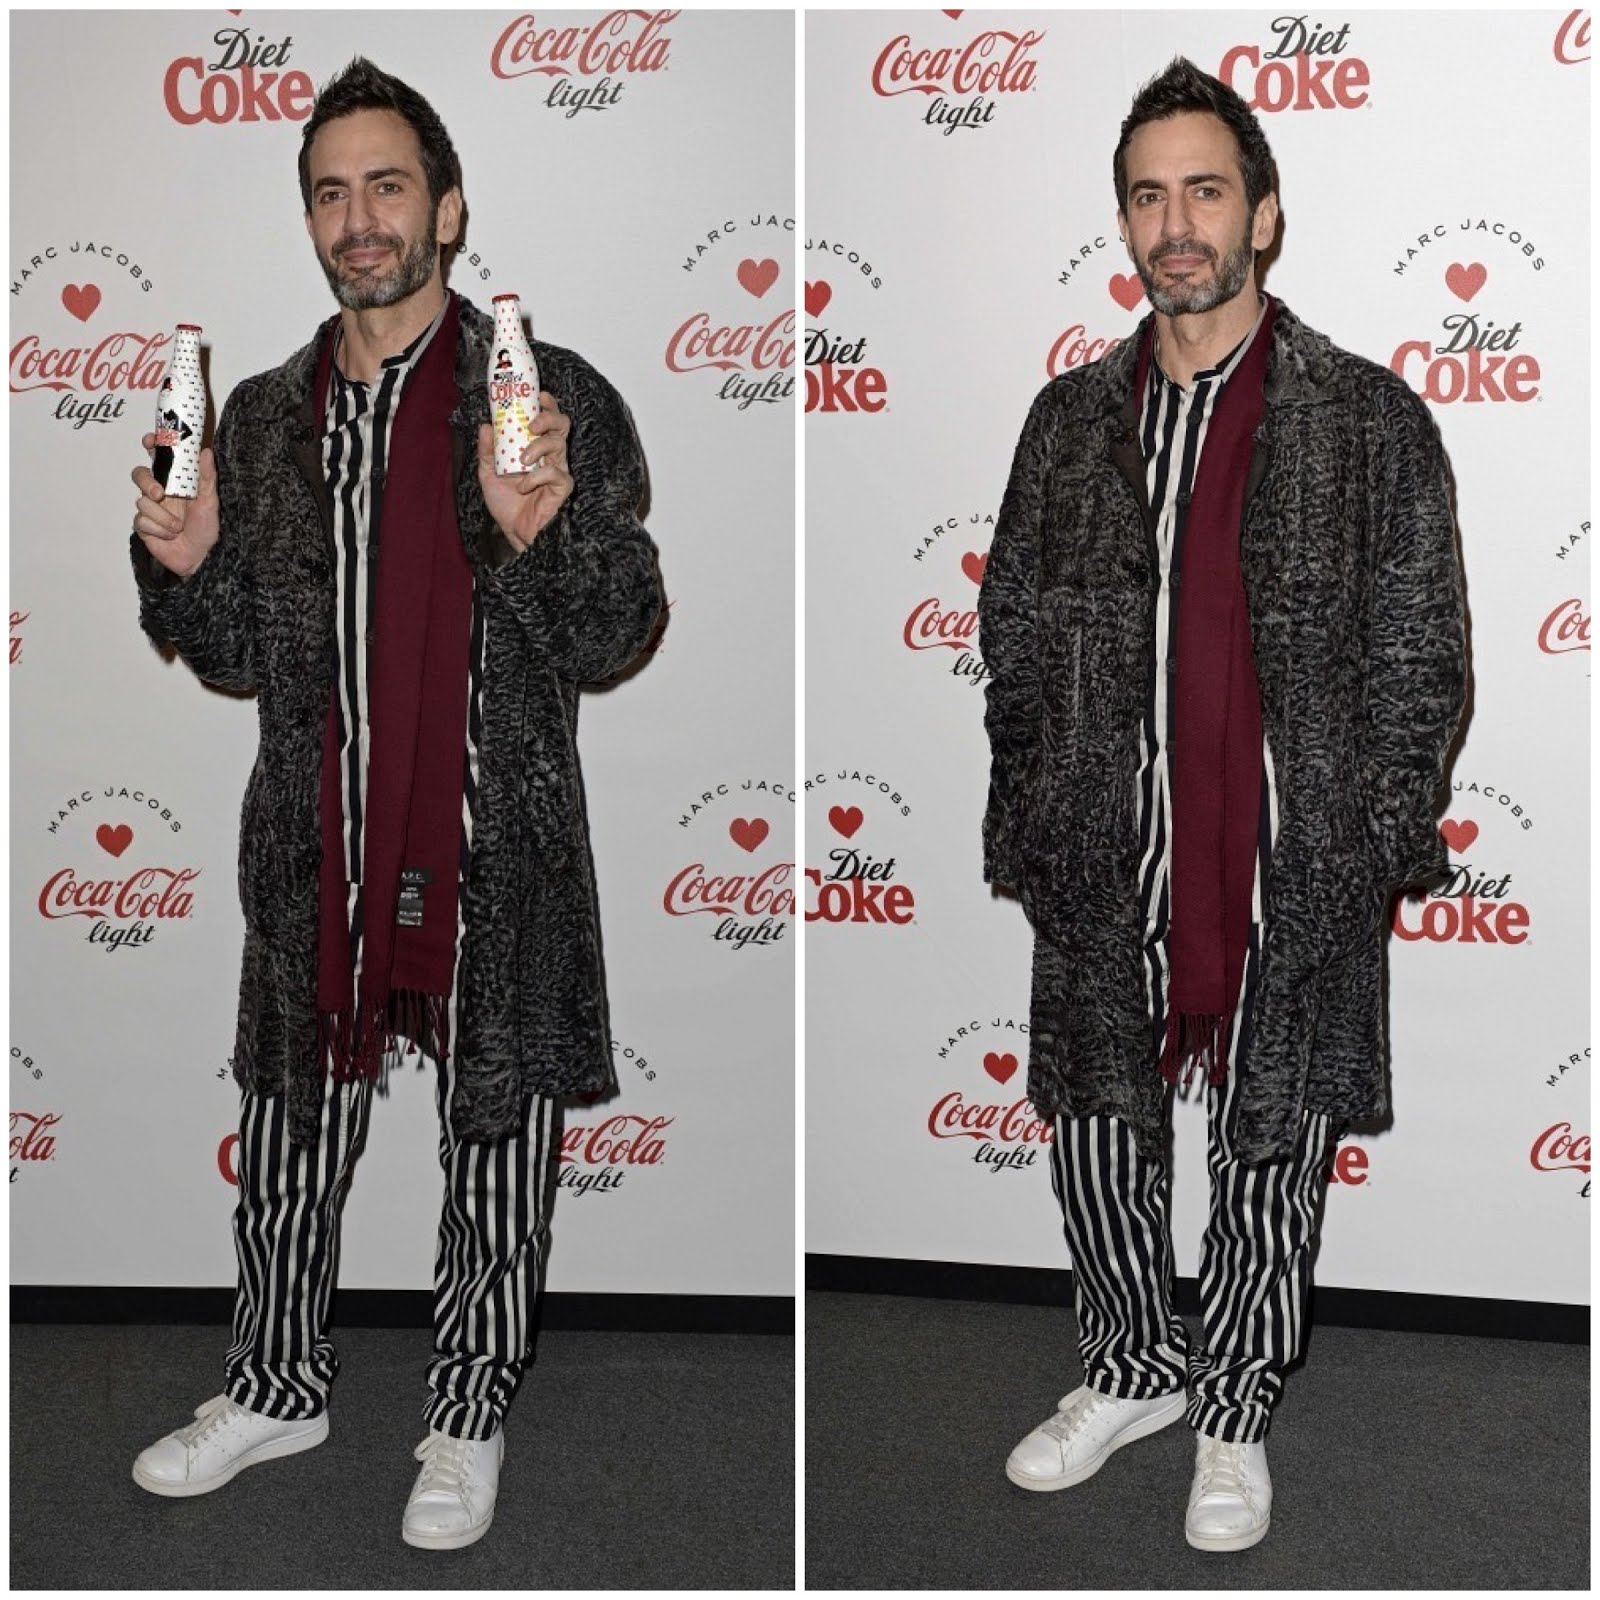 00O00 Menswear Blog The Diet Coke and Marc Jacobs official partnership launch party at the German Gymnasium, 26 Pancras Road, London. Marc Jacobs in pyjamas, Marc by Marc Jacobs?